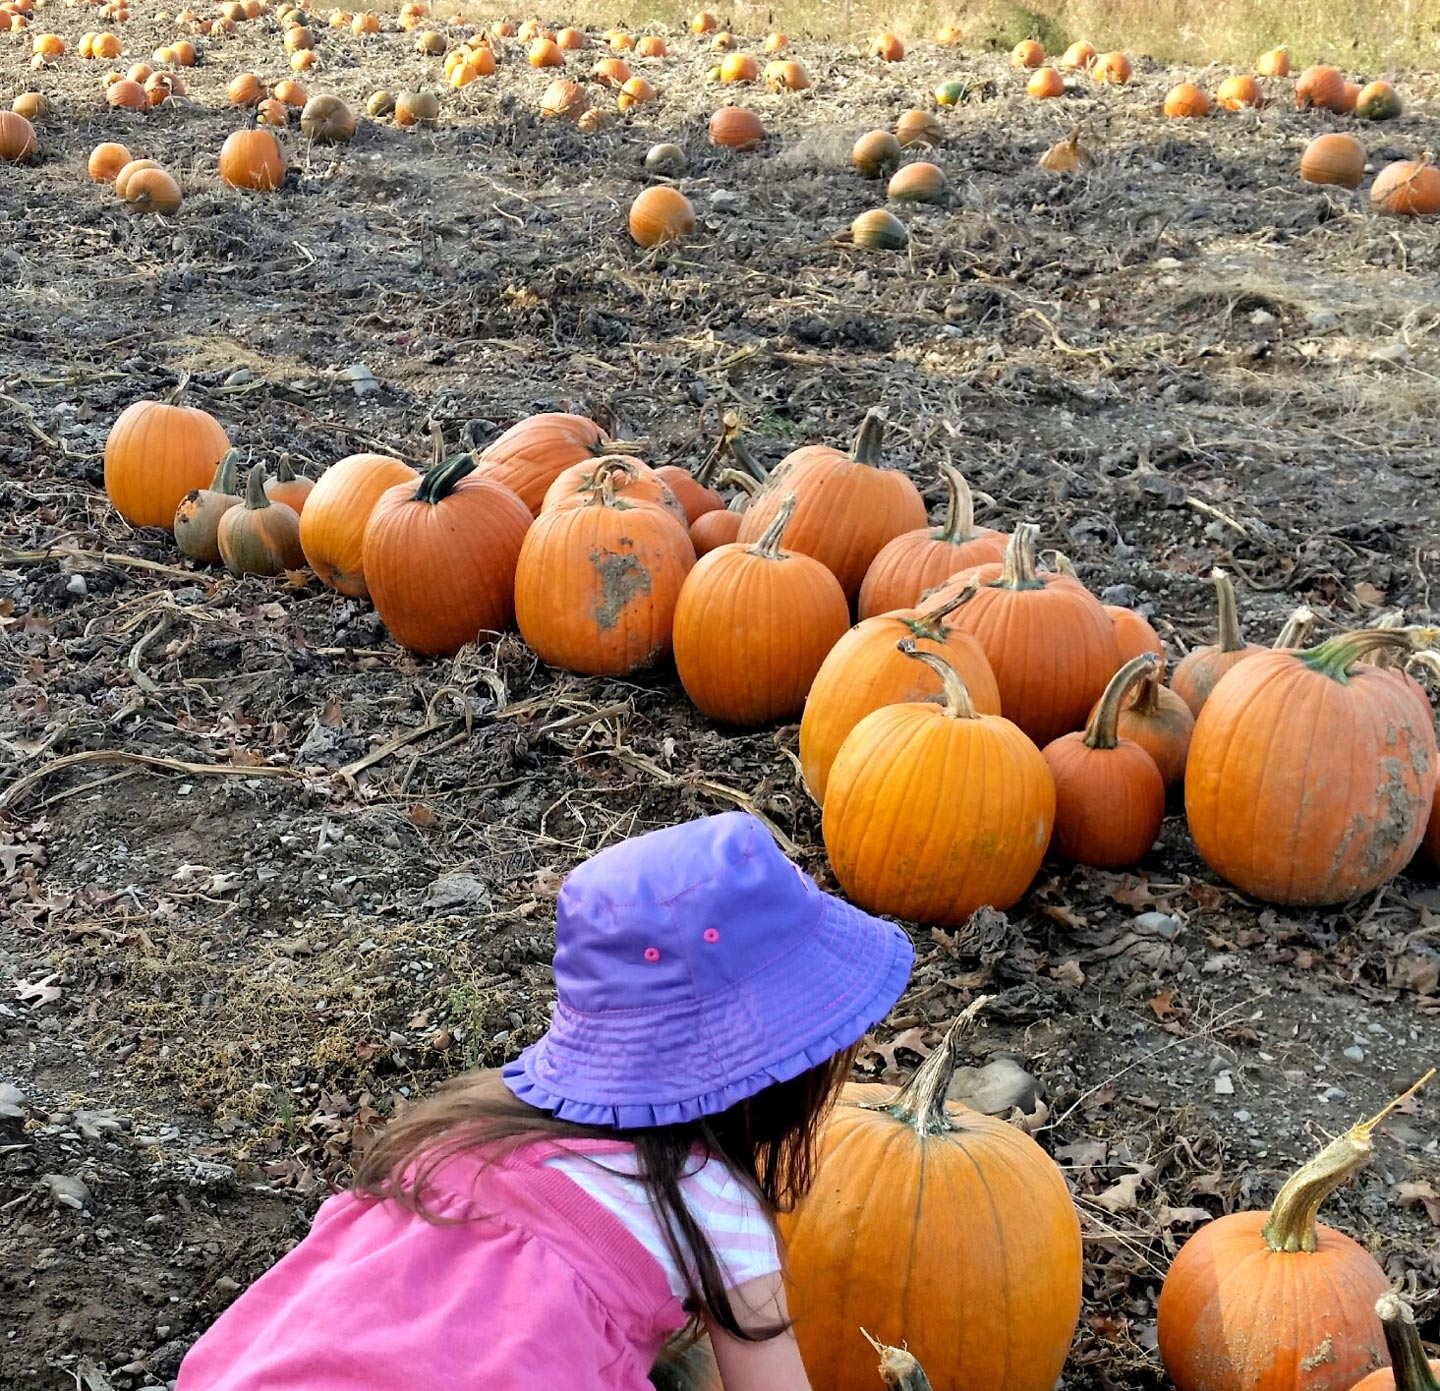 Pumpkin patch tested for quality assurance